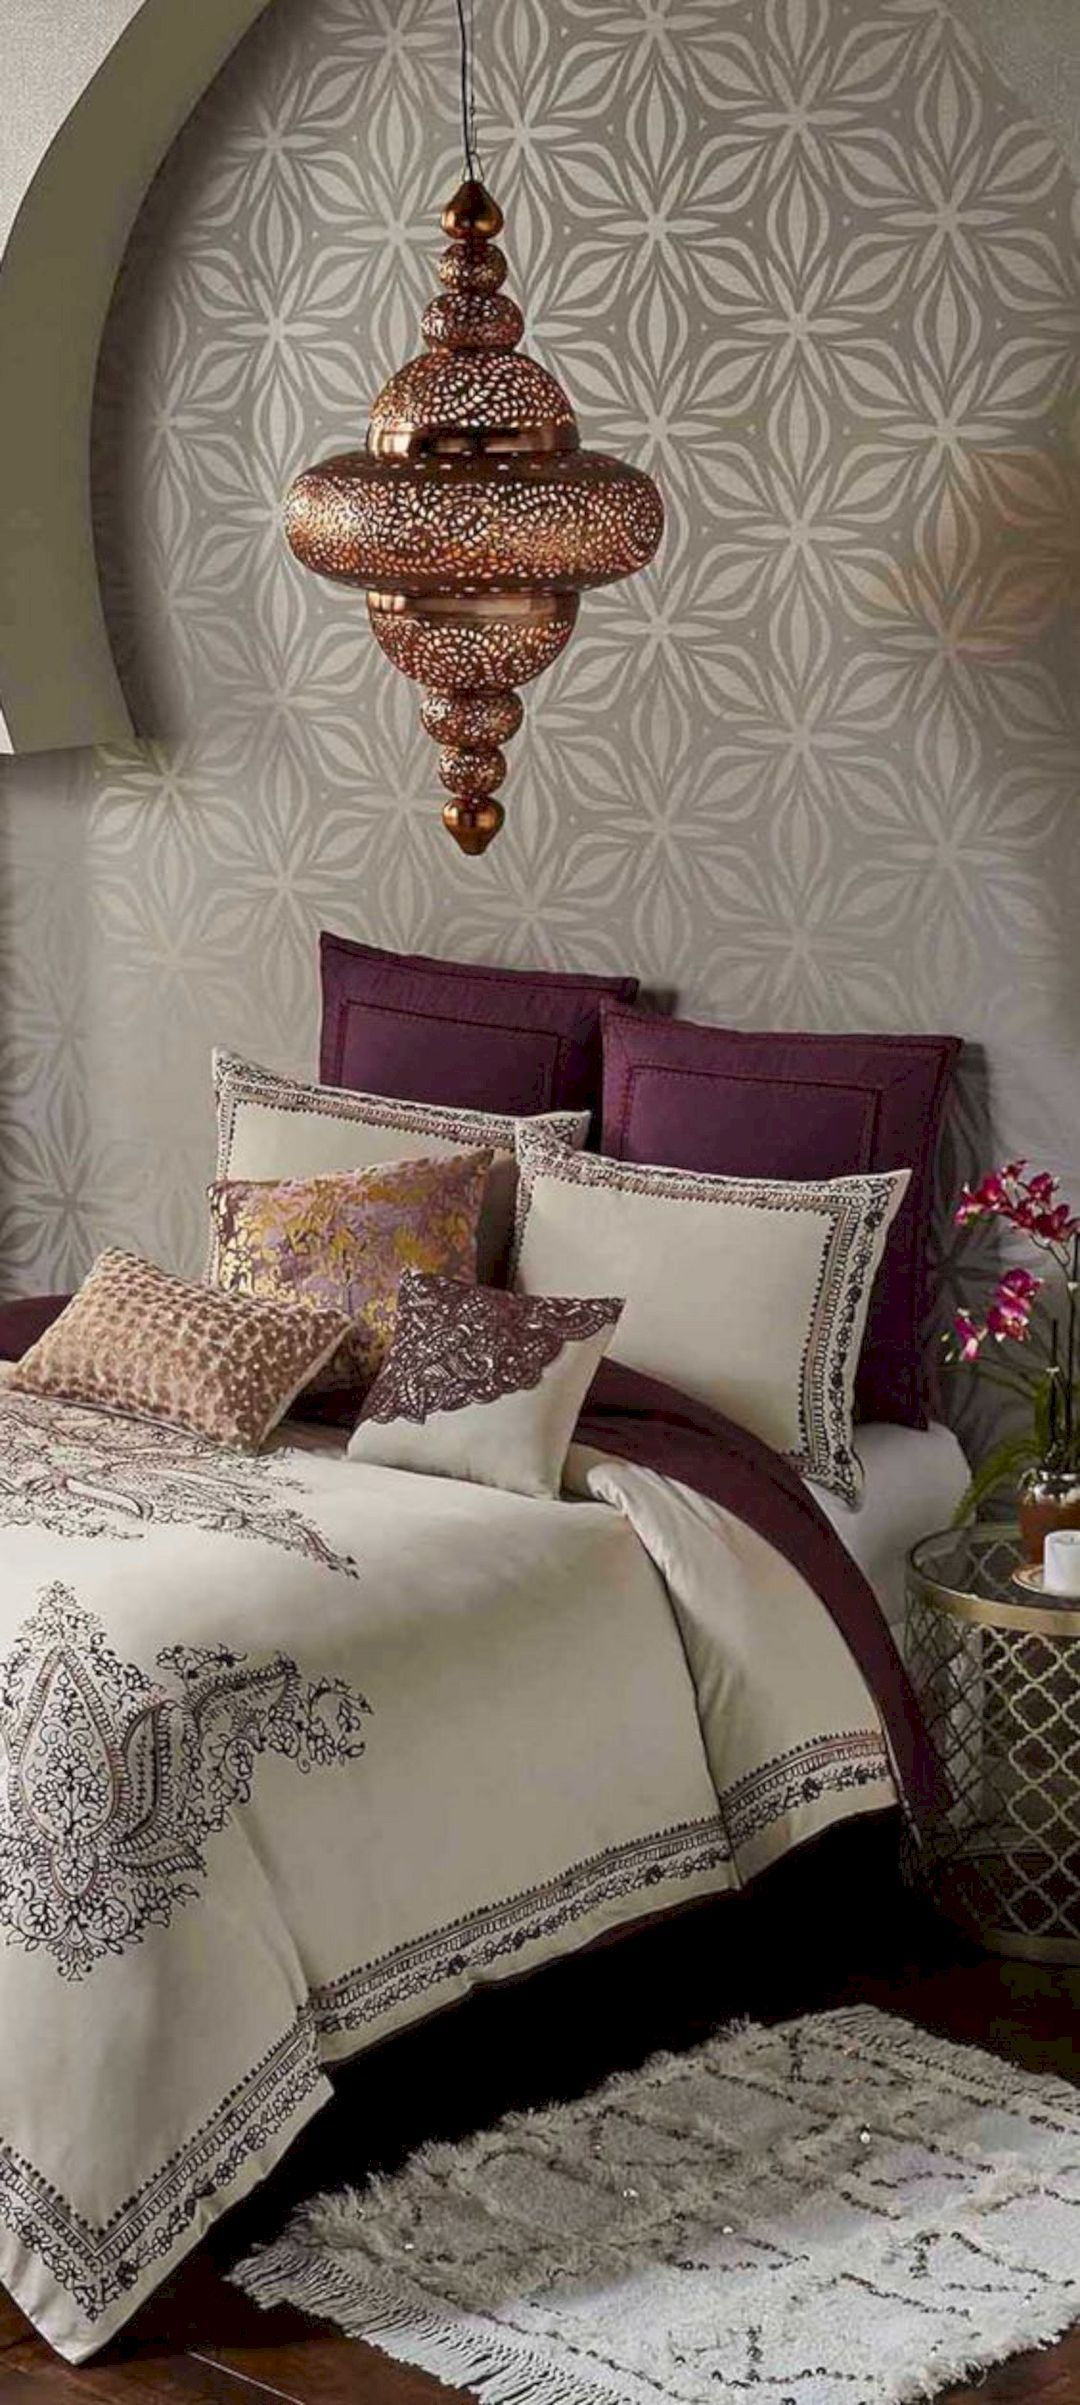 15 Fabulous Moroccan Room Decoration Ideas | 3 Details, accessories on new modern bedroom ideas, new bedroom flooring, new bedroom party, very small master bedroom ideas, purple bedroom ideas, remodeling bedroom ideas, beach bedroom ideas, teenage girl bedroom ideas, creative bedroom wall ideas, new color ideas, new bedroom ideas for women, bedroom interior design ideas, master bedroom color ideas, large bedroom ideas, new home ideas, blue and white bedroom design ideas, simple bedroom ideas, new master bedroom ideas, new bedroom wallpaper, new bedroom color,